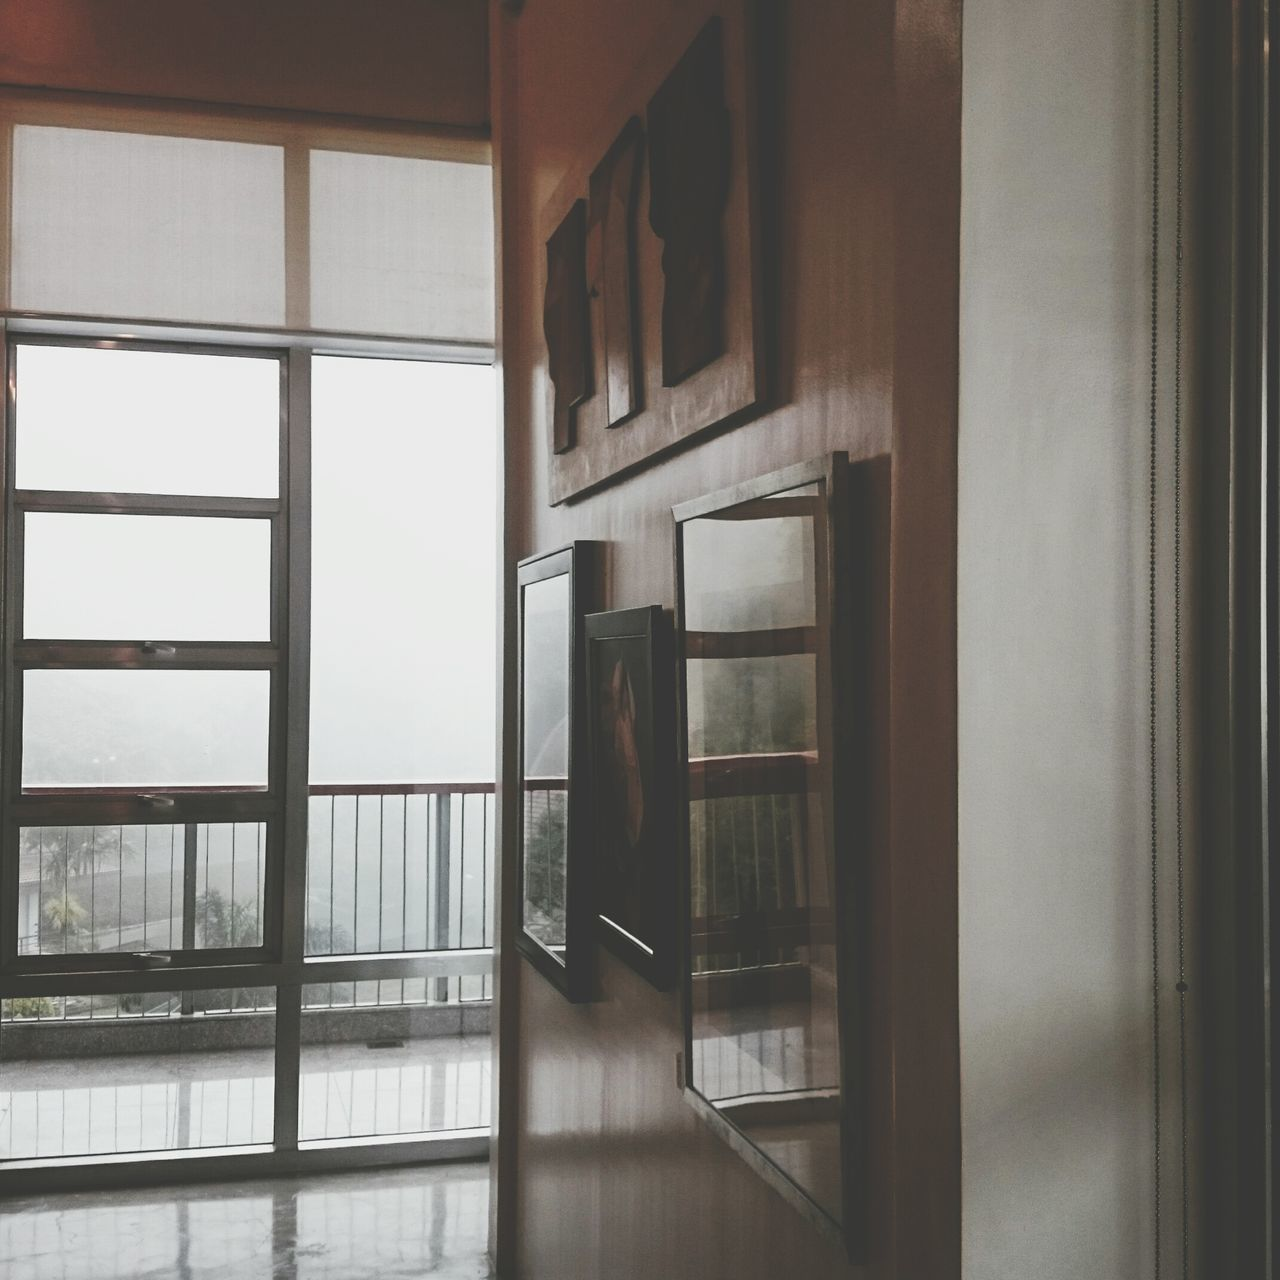 Bencabmuseum Baguio City, Philippines Door Indoors  Open Home Interior Architecture No People Sliding Door Day Painting Exhibition Check This Out Tranquility Relaxing Moments Foggy Mountains